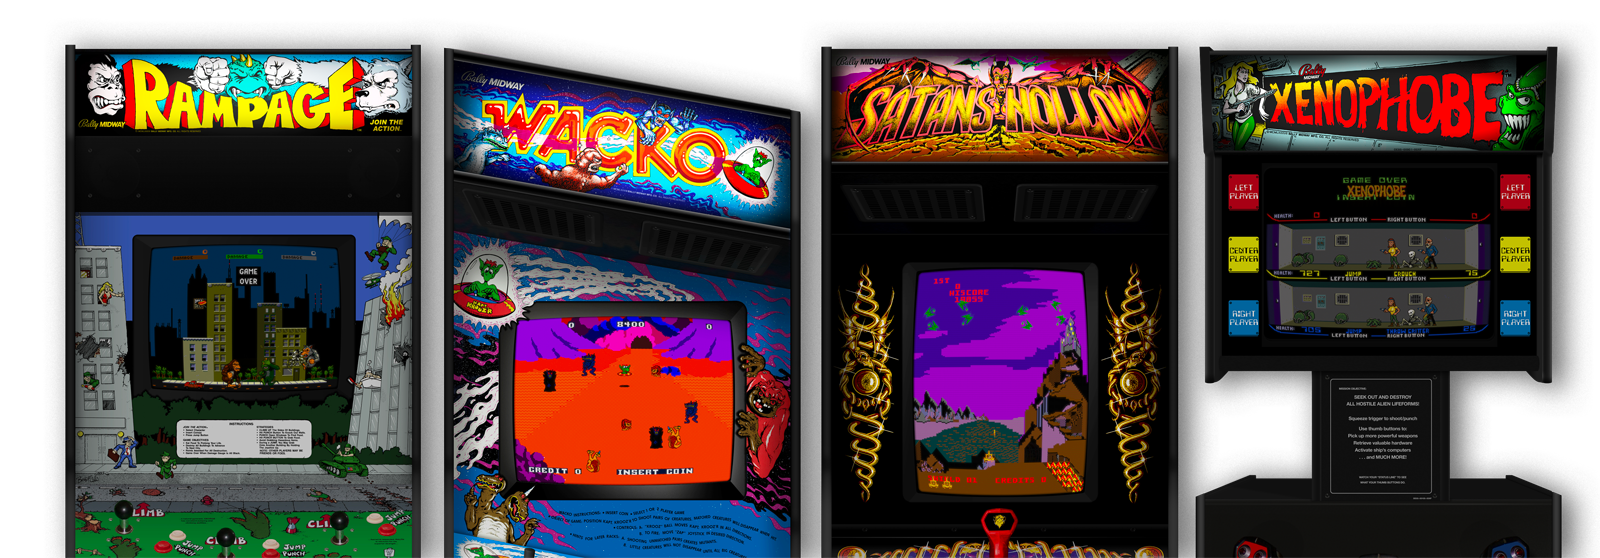 Attack Pack arcade cabinets